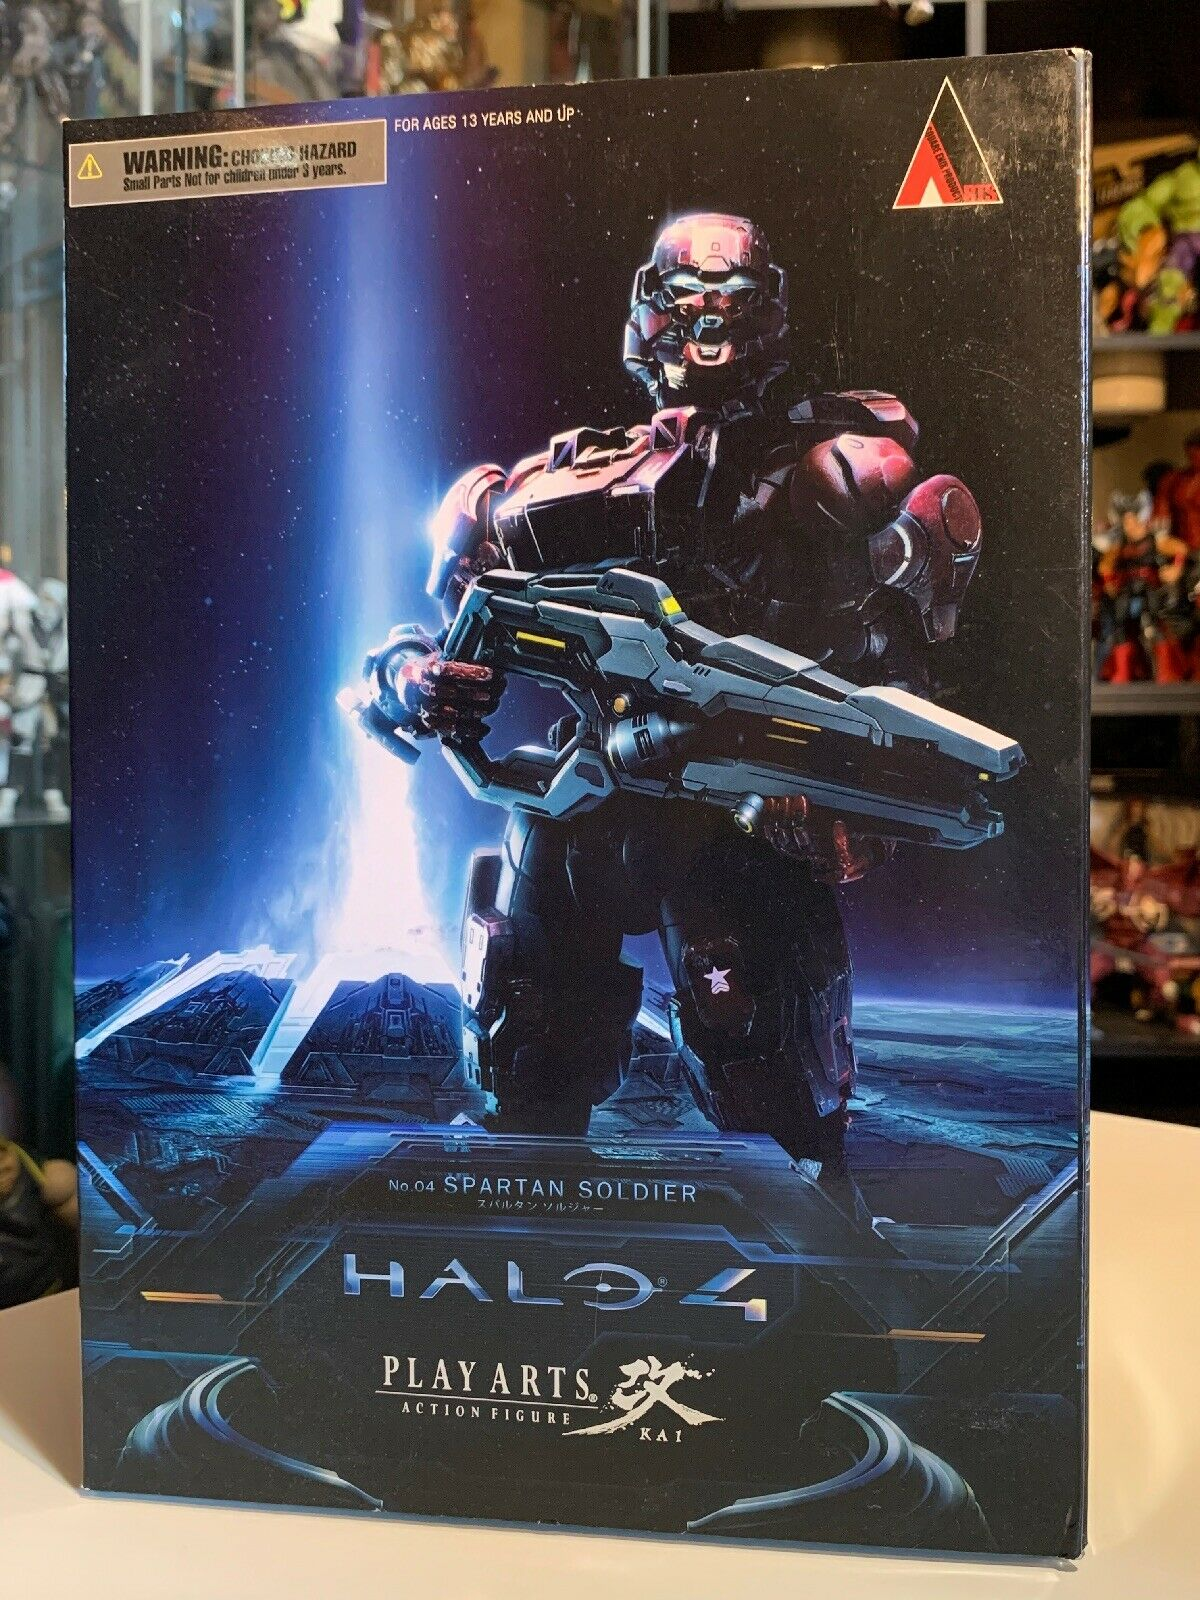 HALO 4 Play Arts Kai No.4 SPARTAN SOLDIER  Square Enix Pre-owned